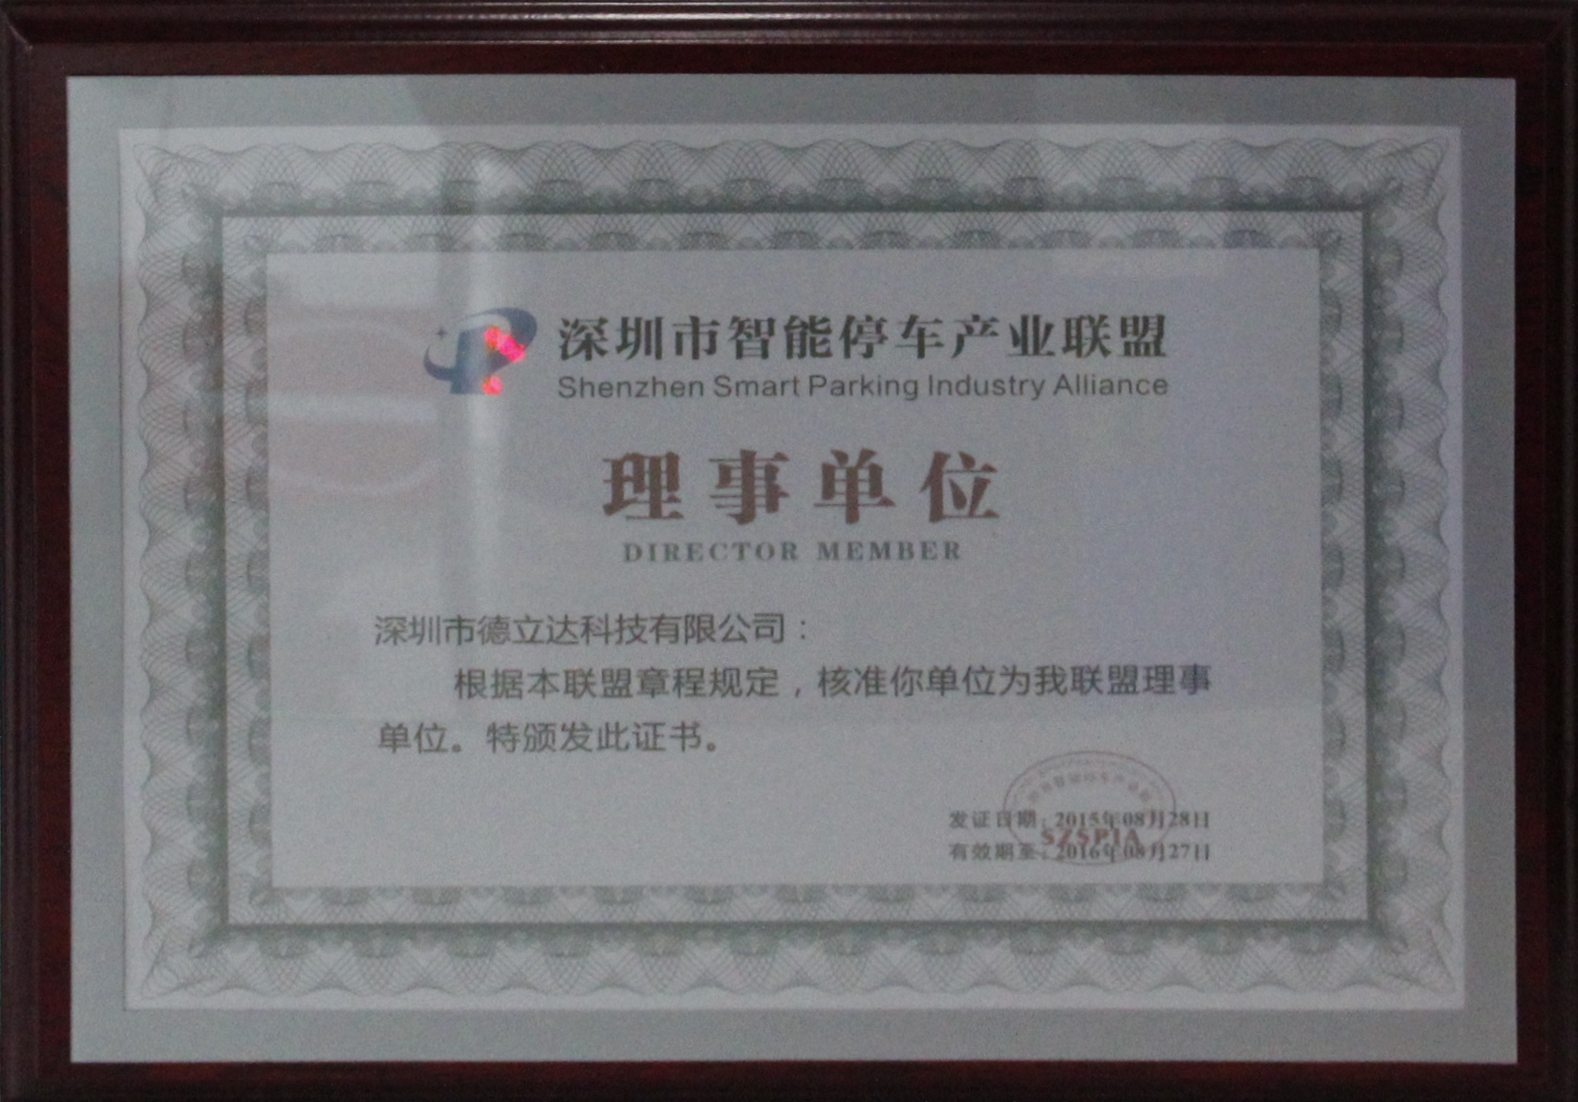 Shenzhen Smart Parking Industry Alliance Director Member